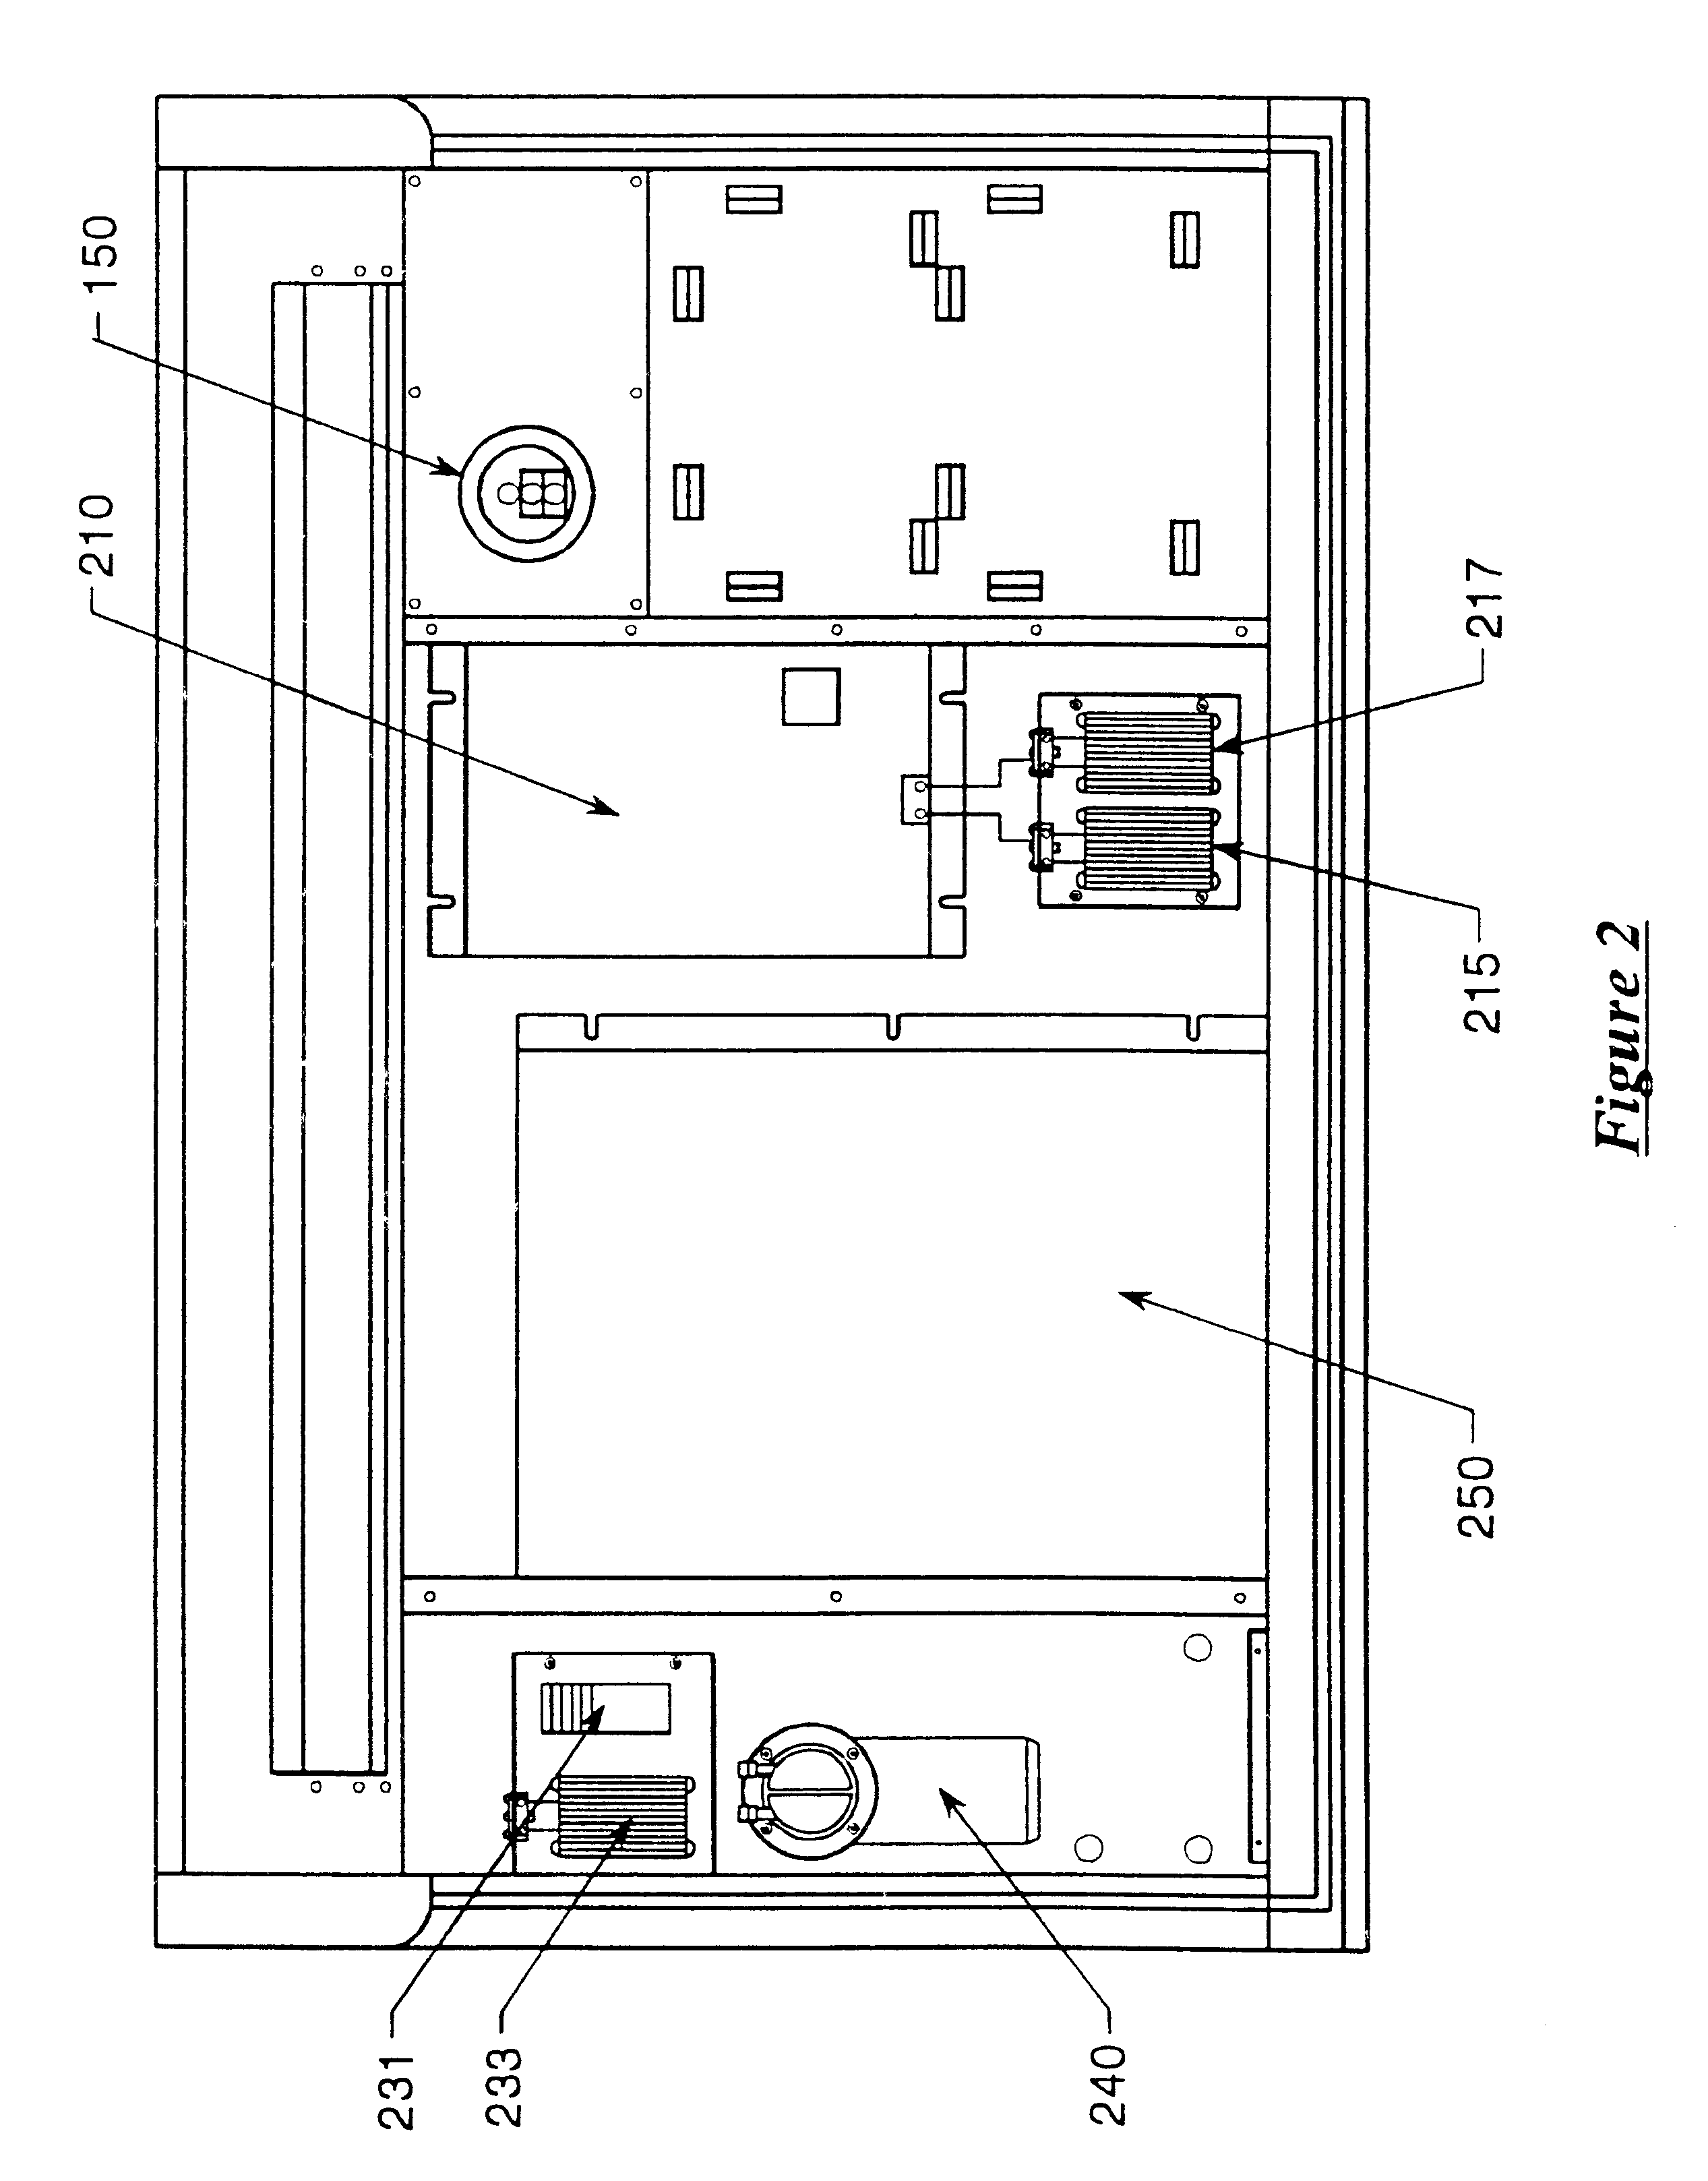 Patent Us6349264 Method And Apparatus For Automatic Tissue Figure 2 Simplified Schematic Diagram Of Hard Drive Internals Drawing